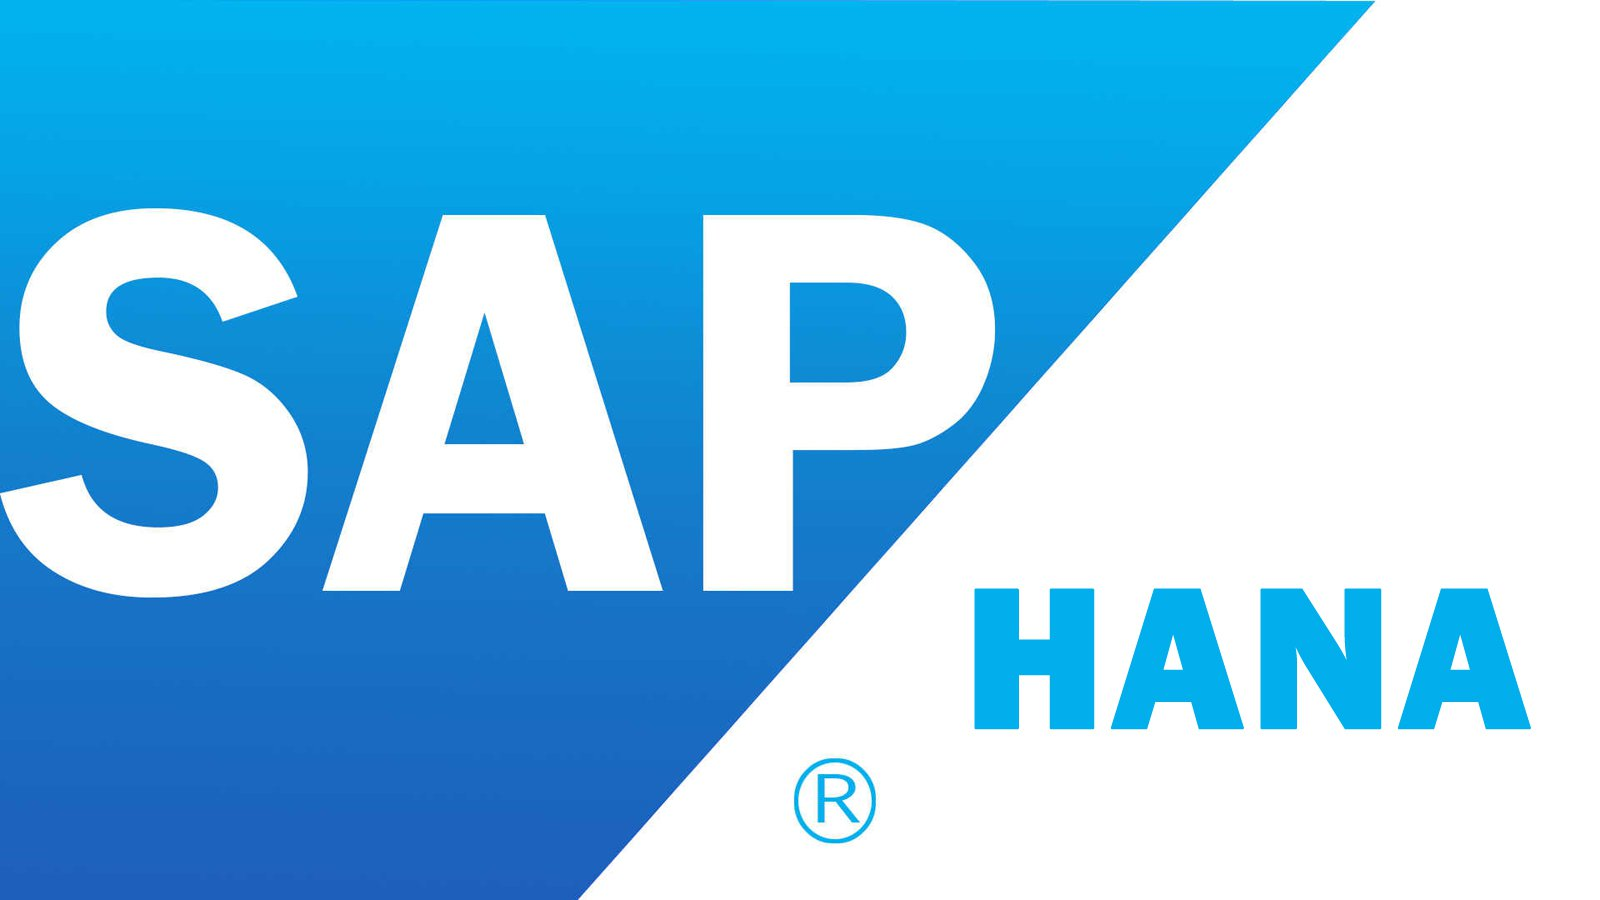 sap logo sap symbol meaning history and evolution